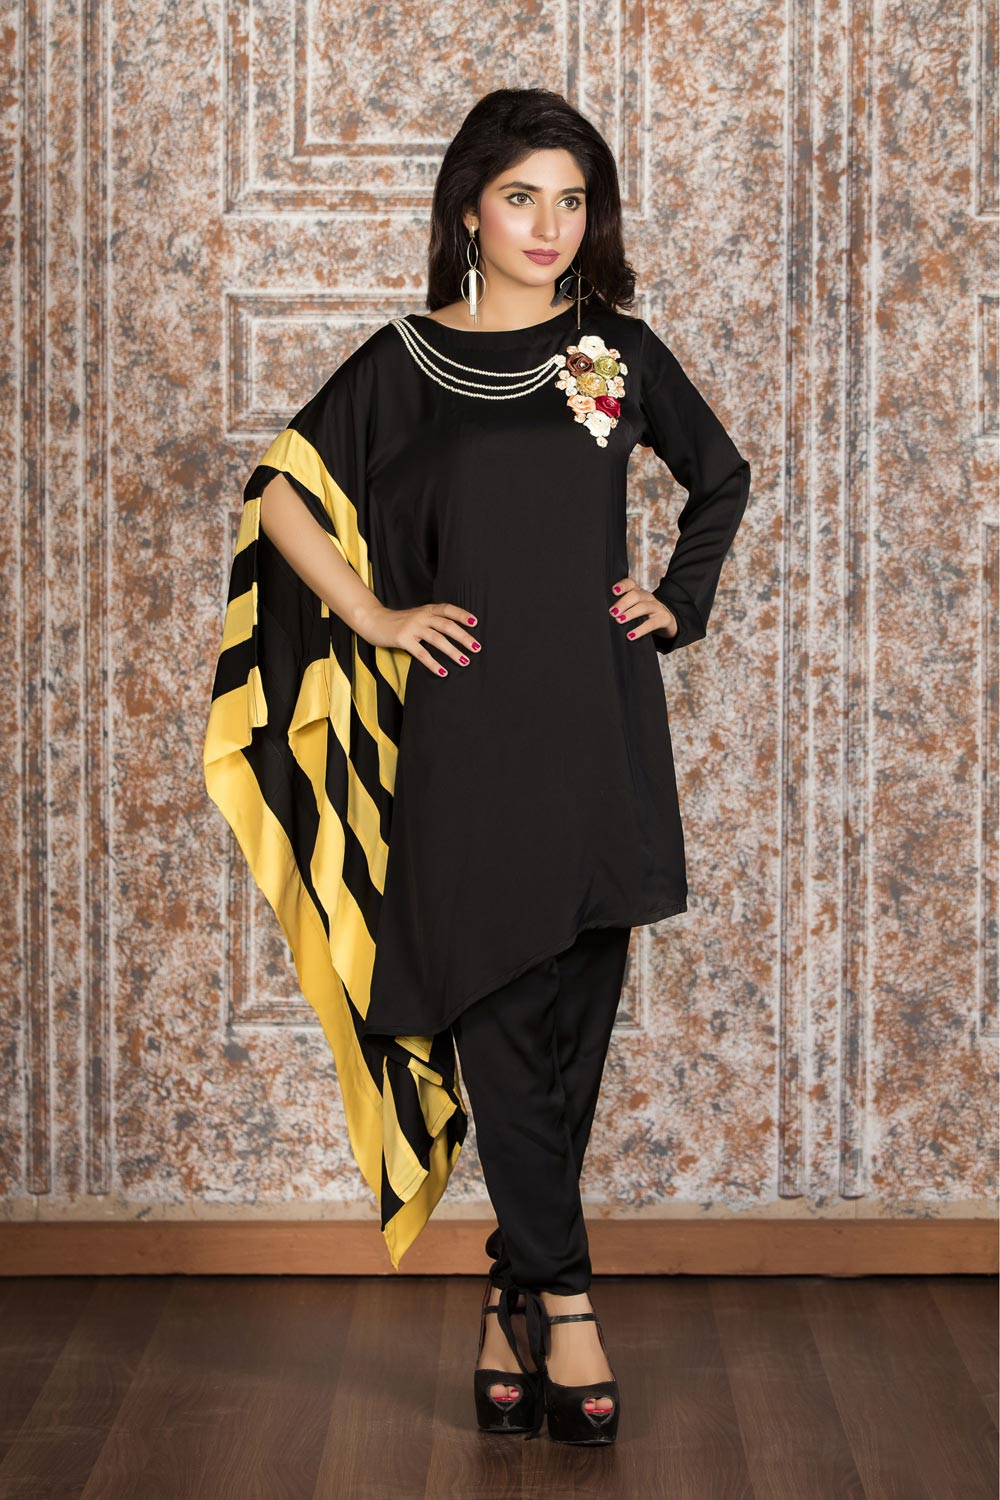 EXCLUSIVE BLACK AND YELLOW CASUAL WEAR - ZZC196 - Exclusive Online ... 85d8c5706